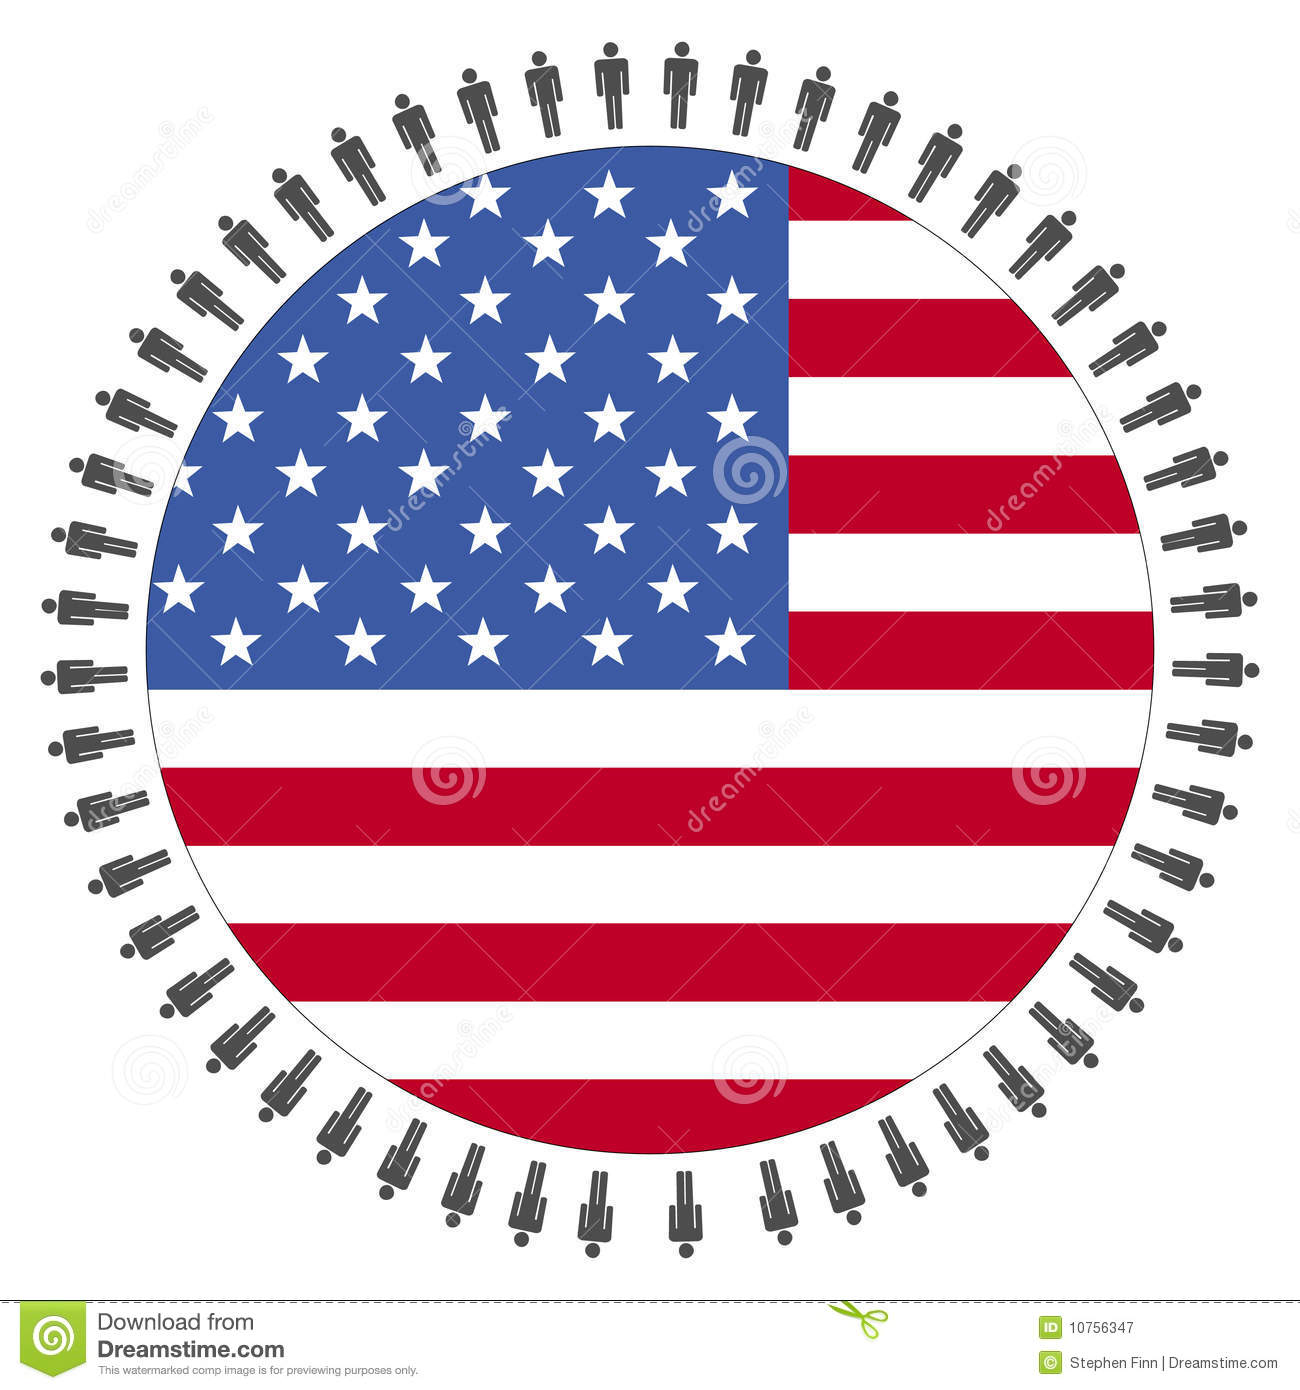 USA Flag With People Royalty Free Stock Photography - Image: 10756347